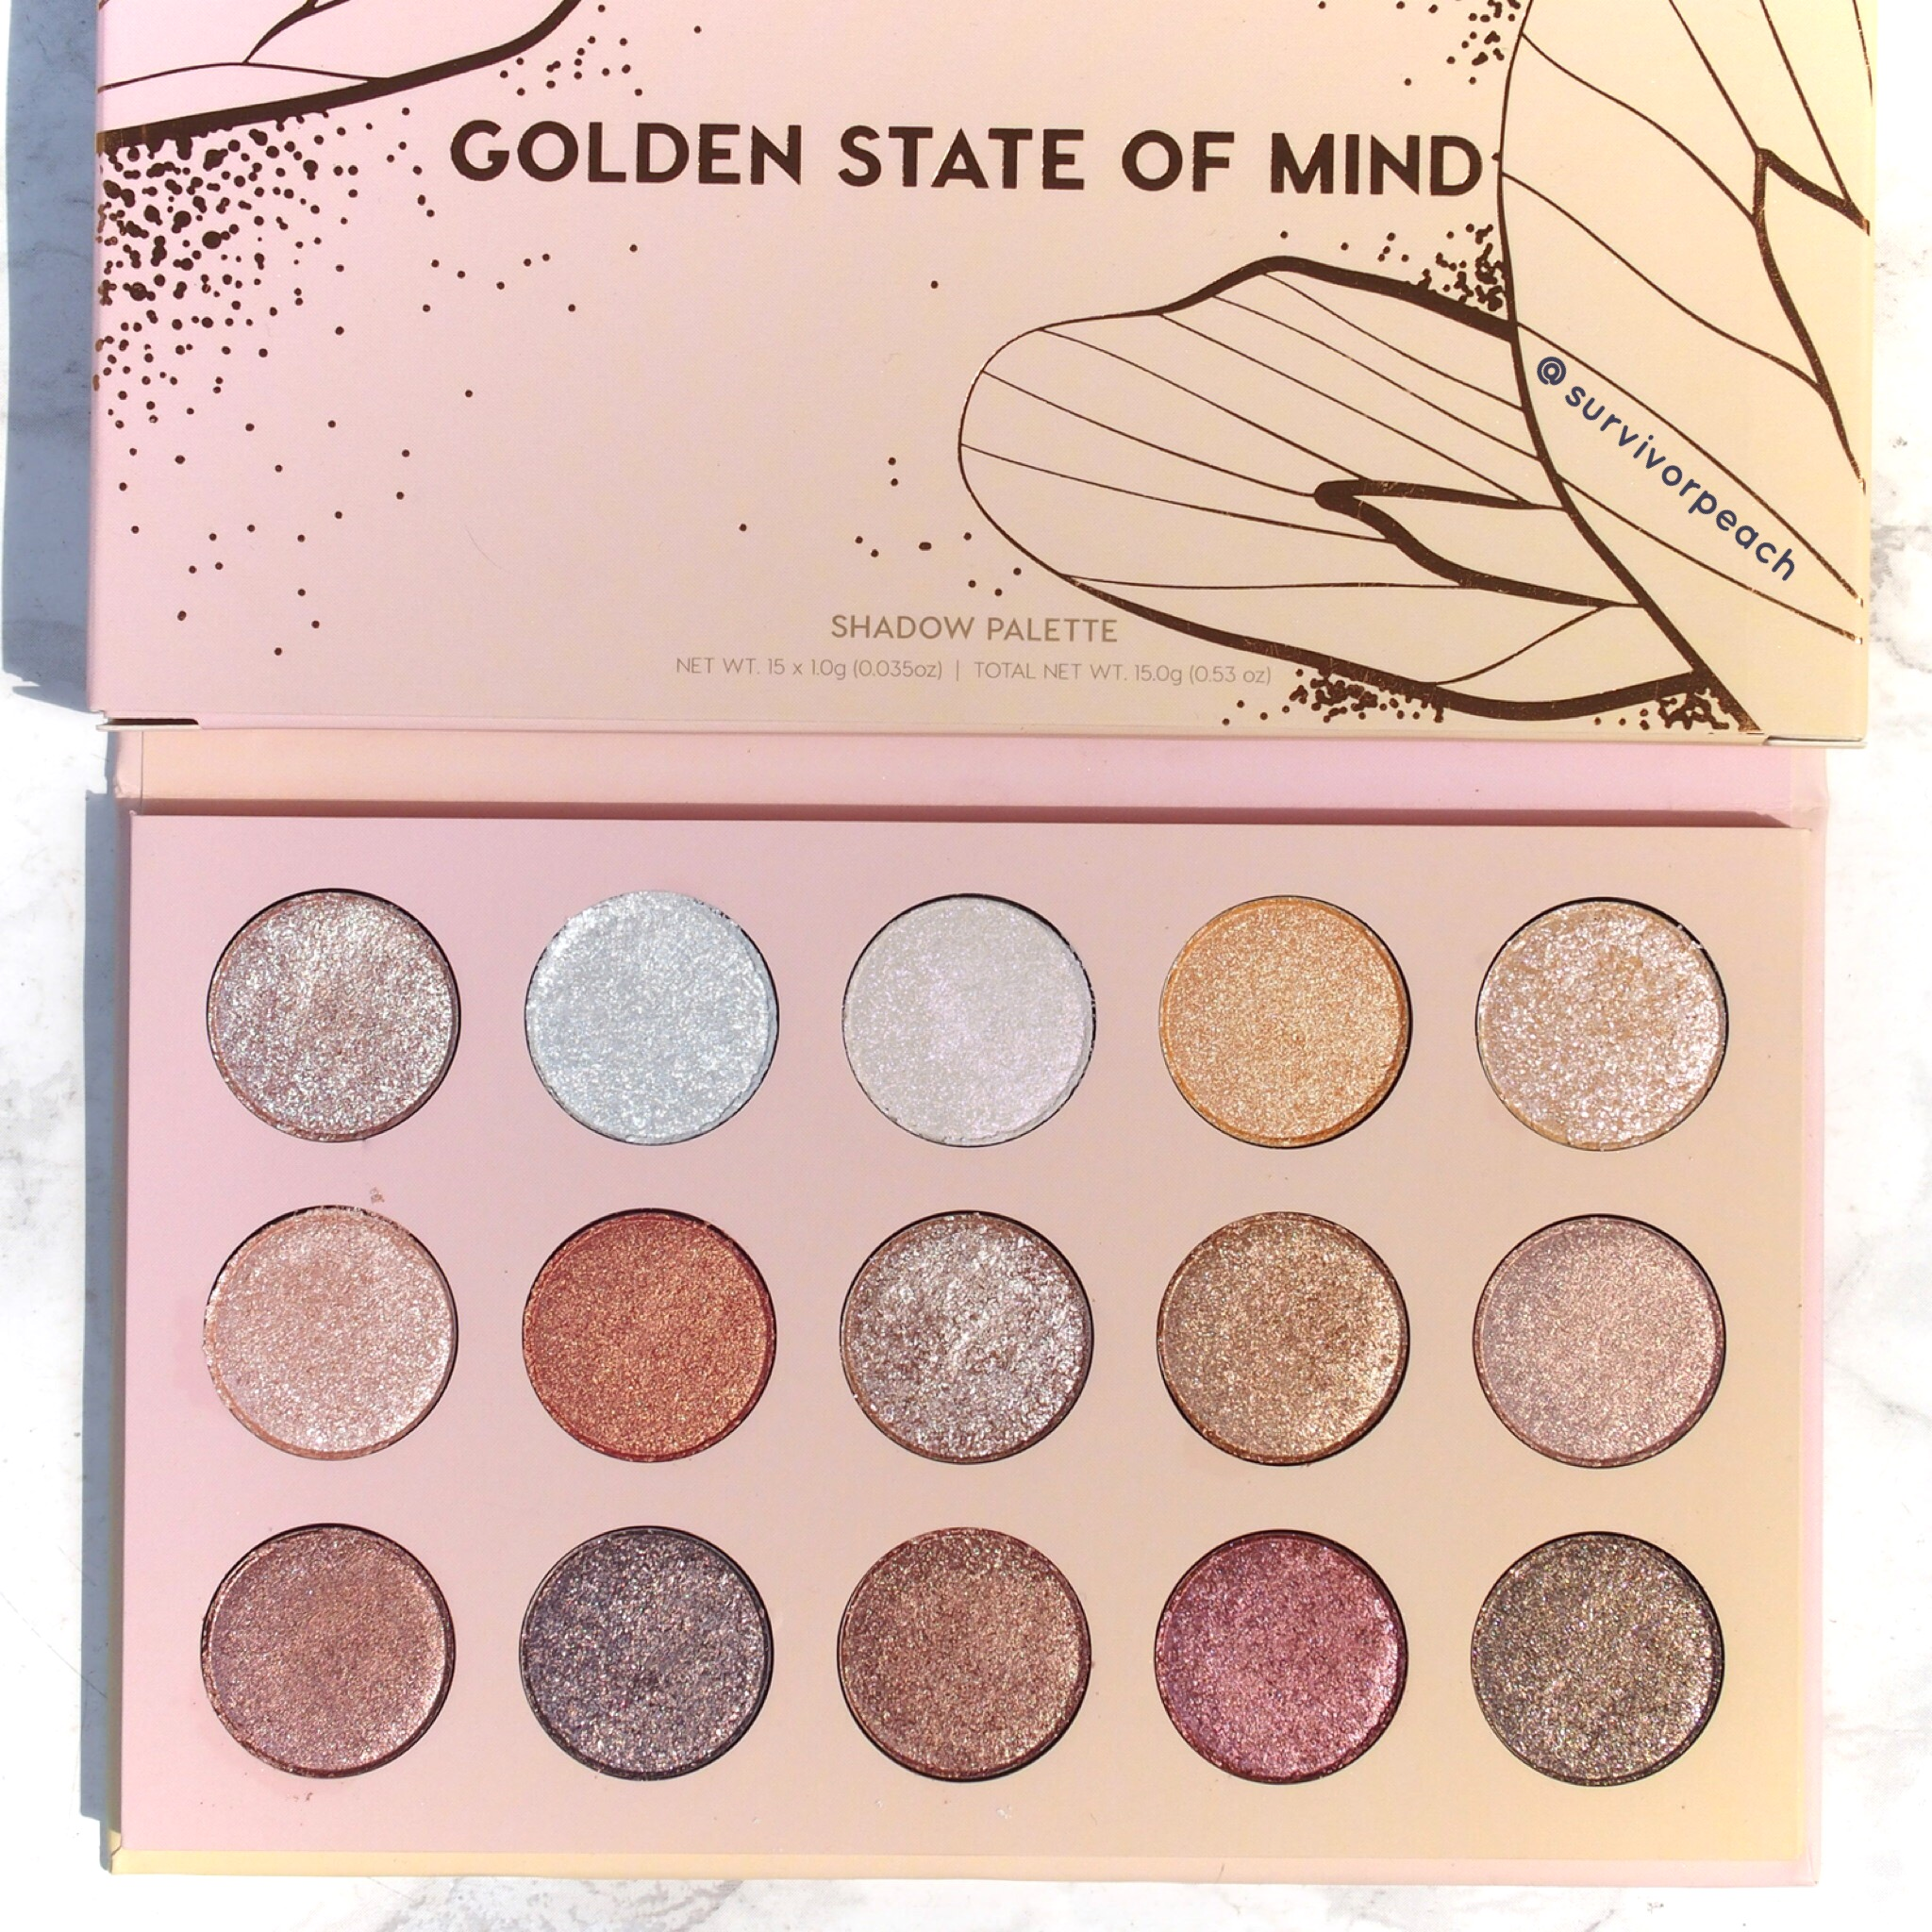 Golden State of Mind palette